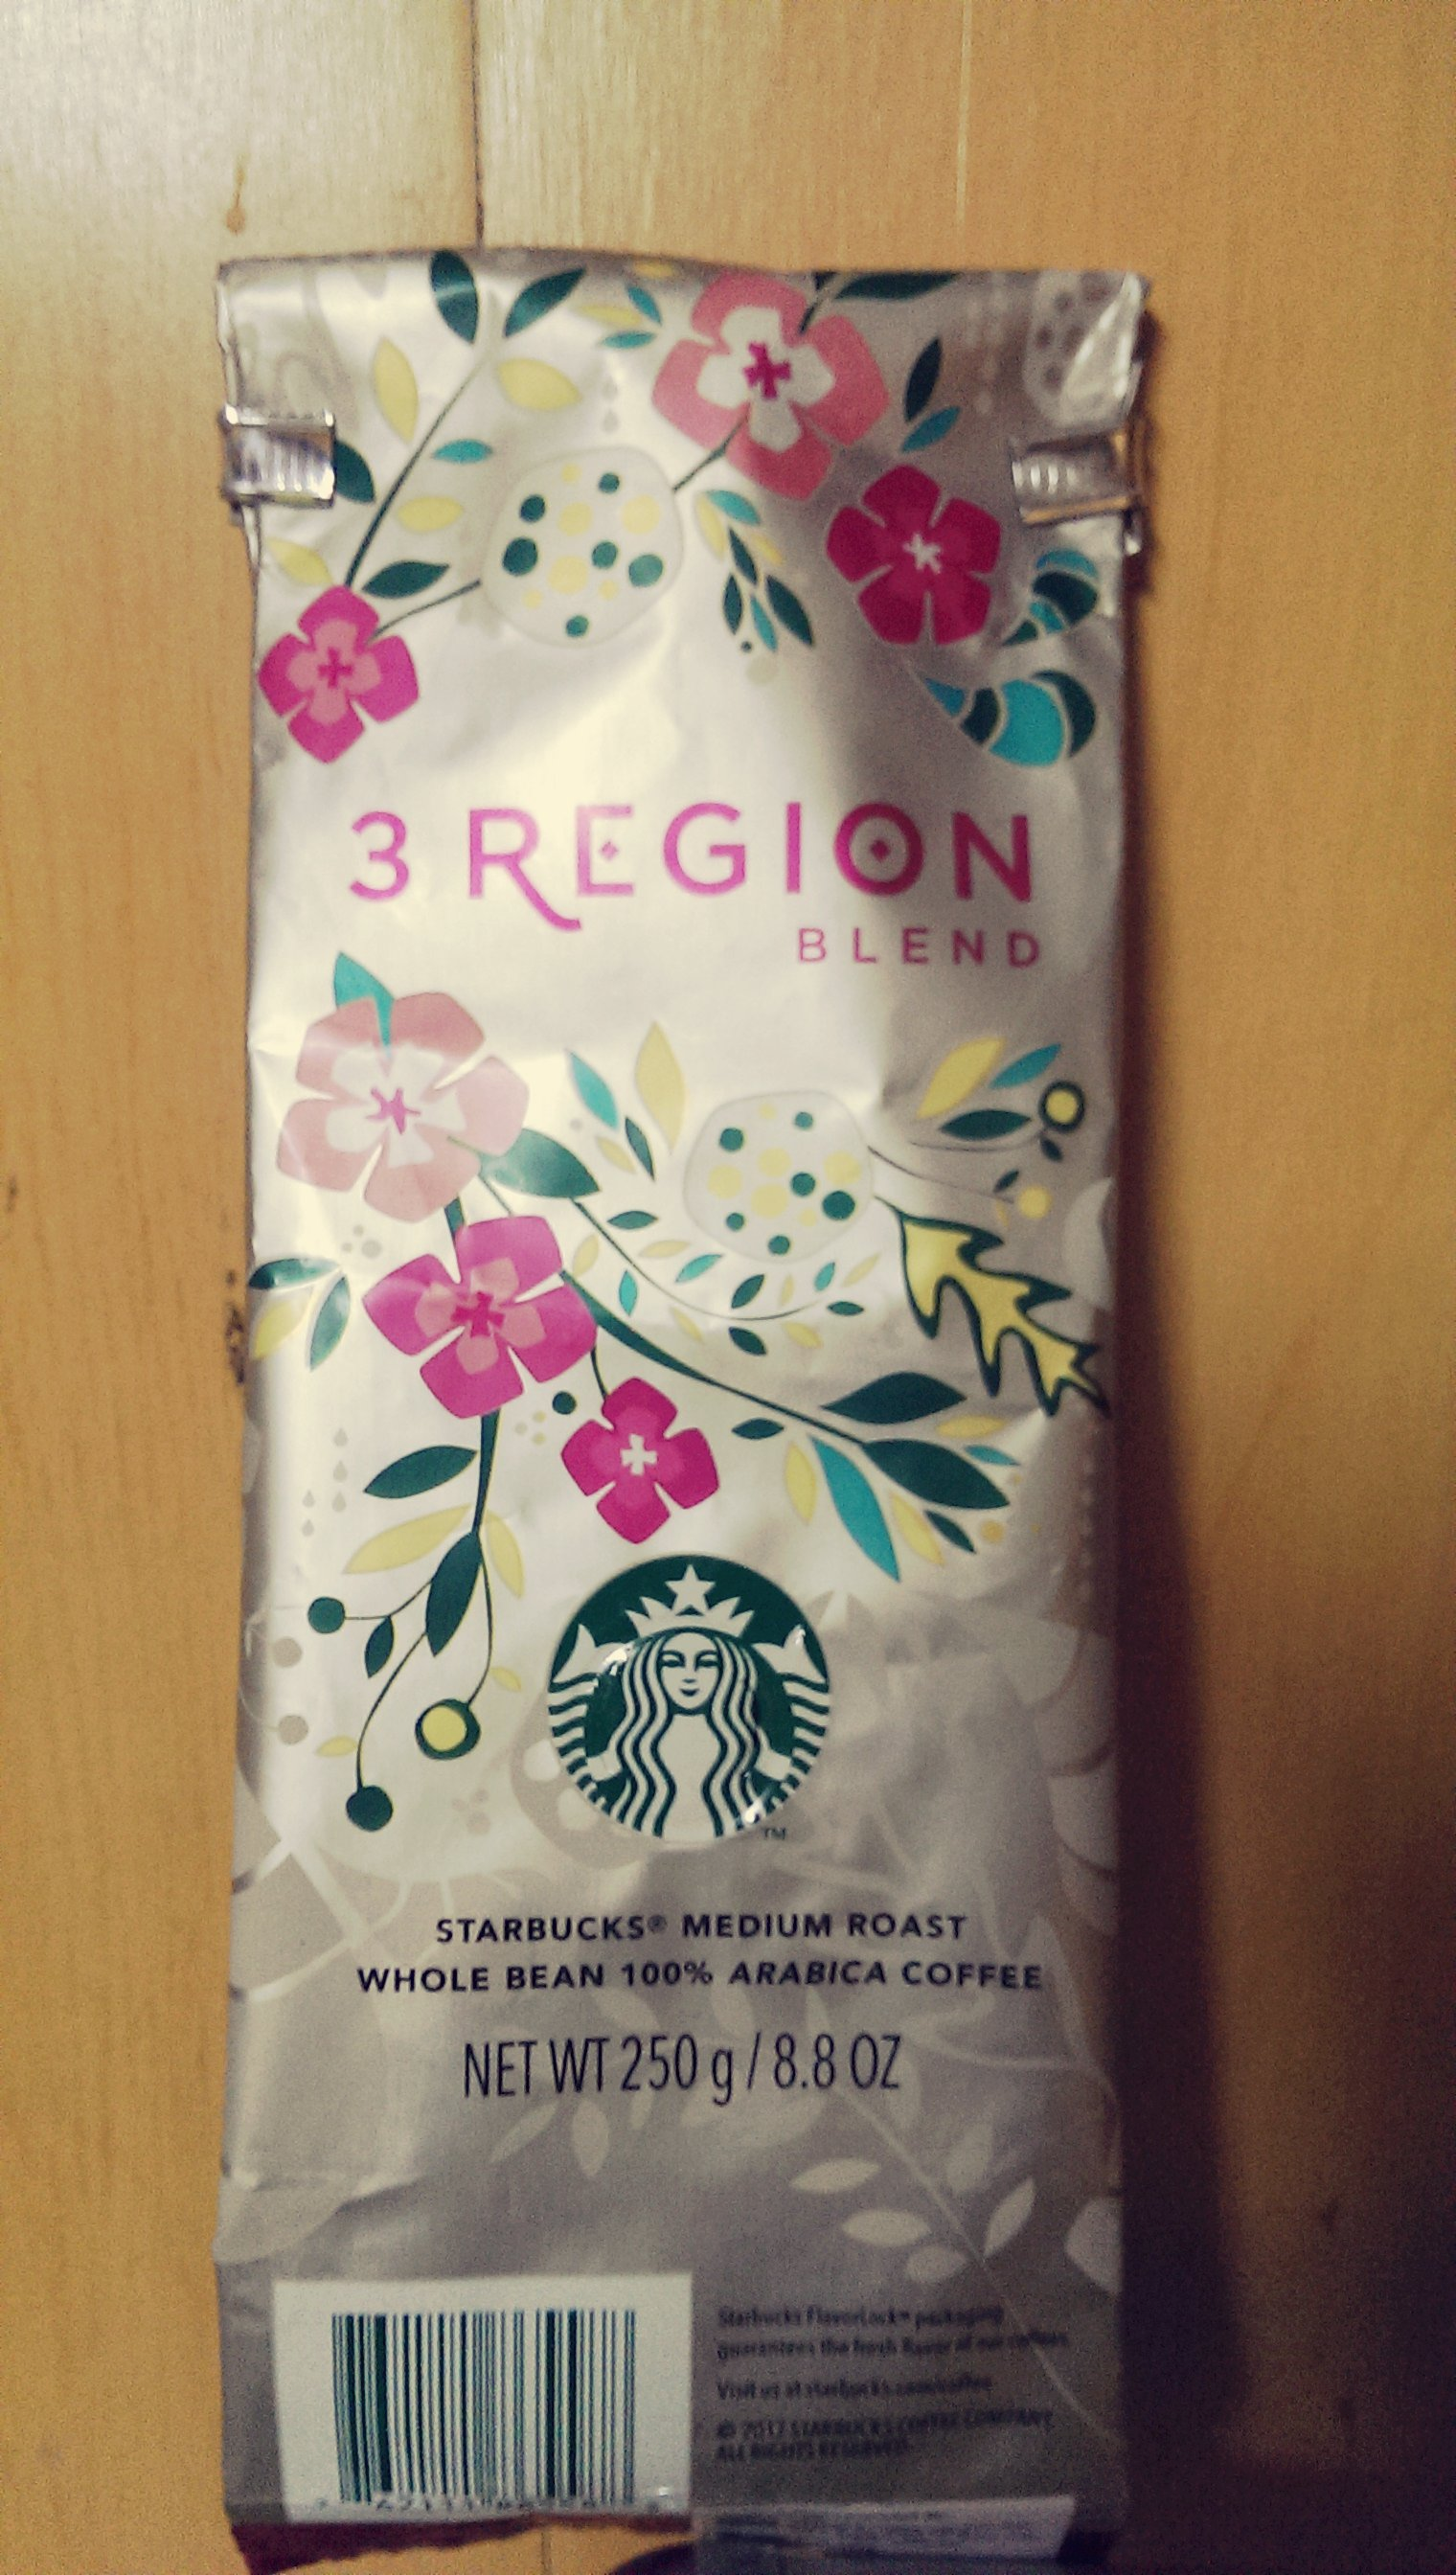 Starbucks 3 region